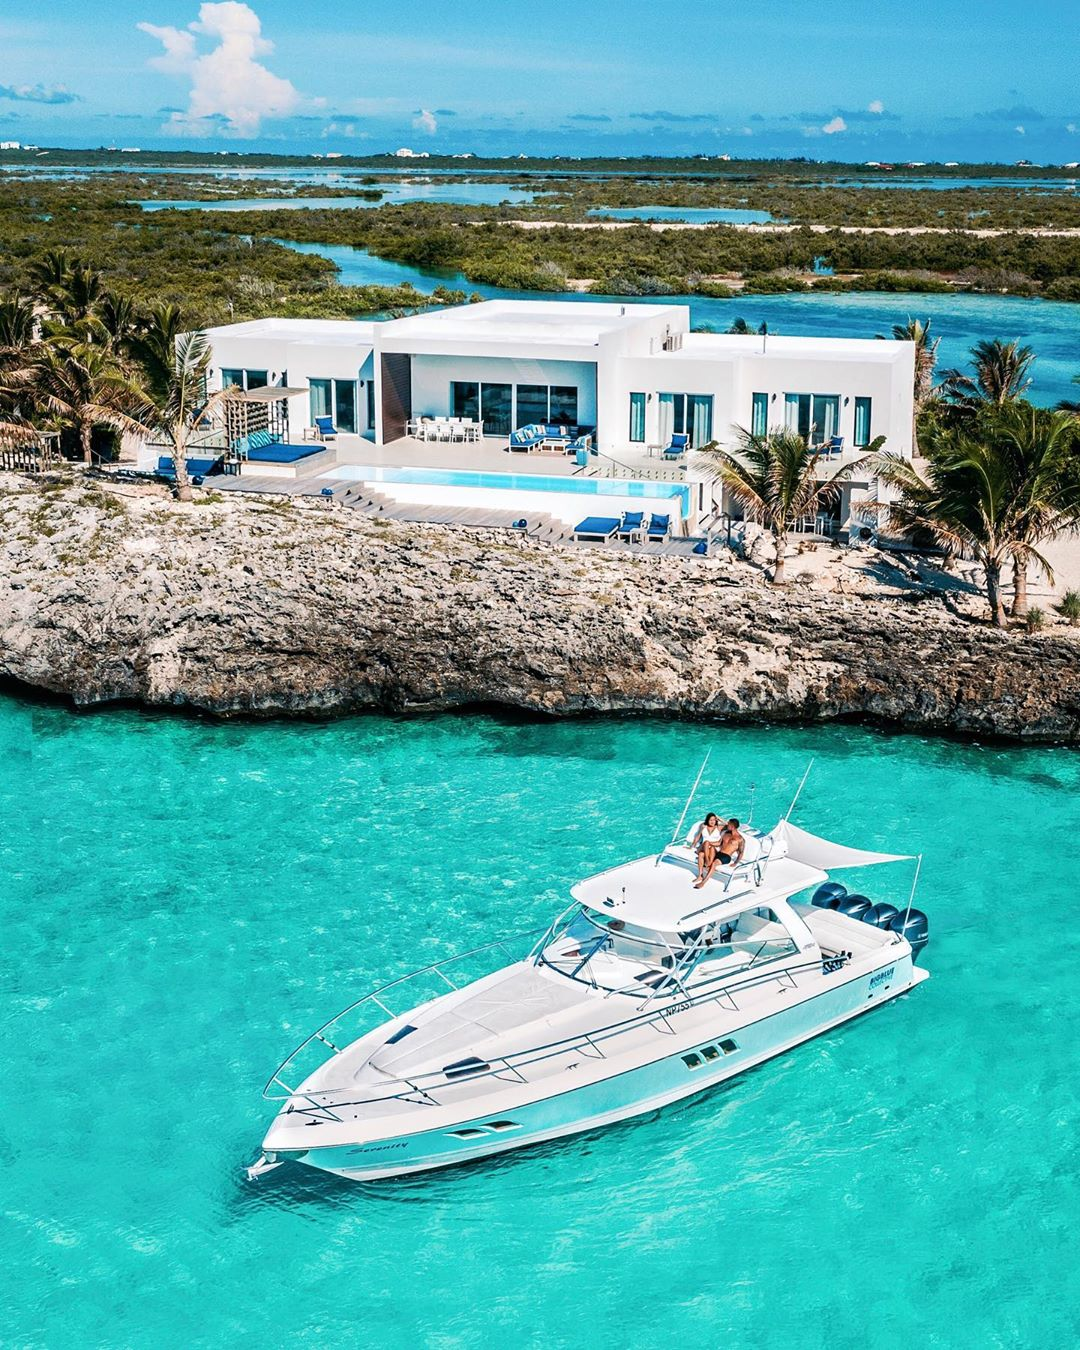 Get your Bags Packed for a Baecation in theTurks and Caicos Islands